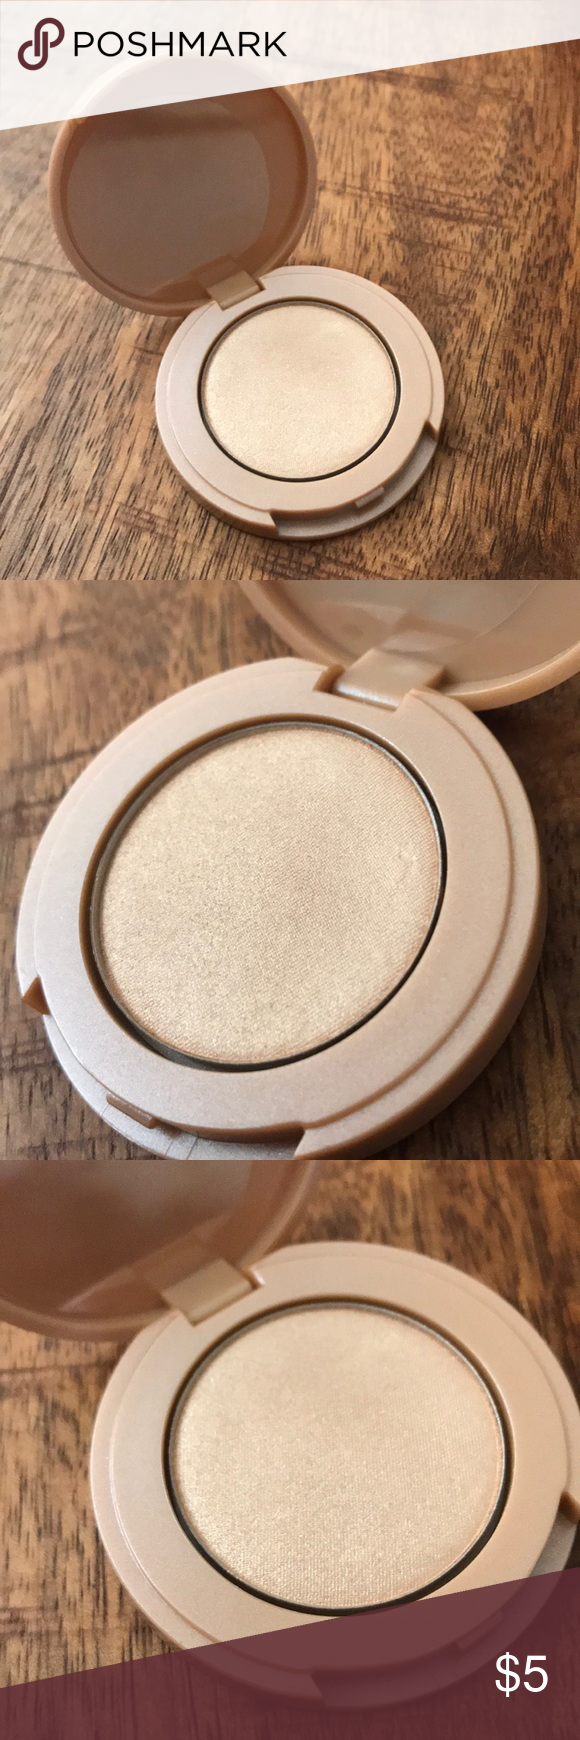 tarte Cosmetics Amazonian Clay 12 Hour Blush reviews in